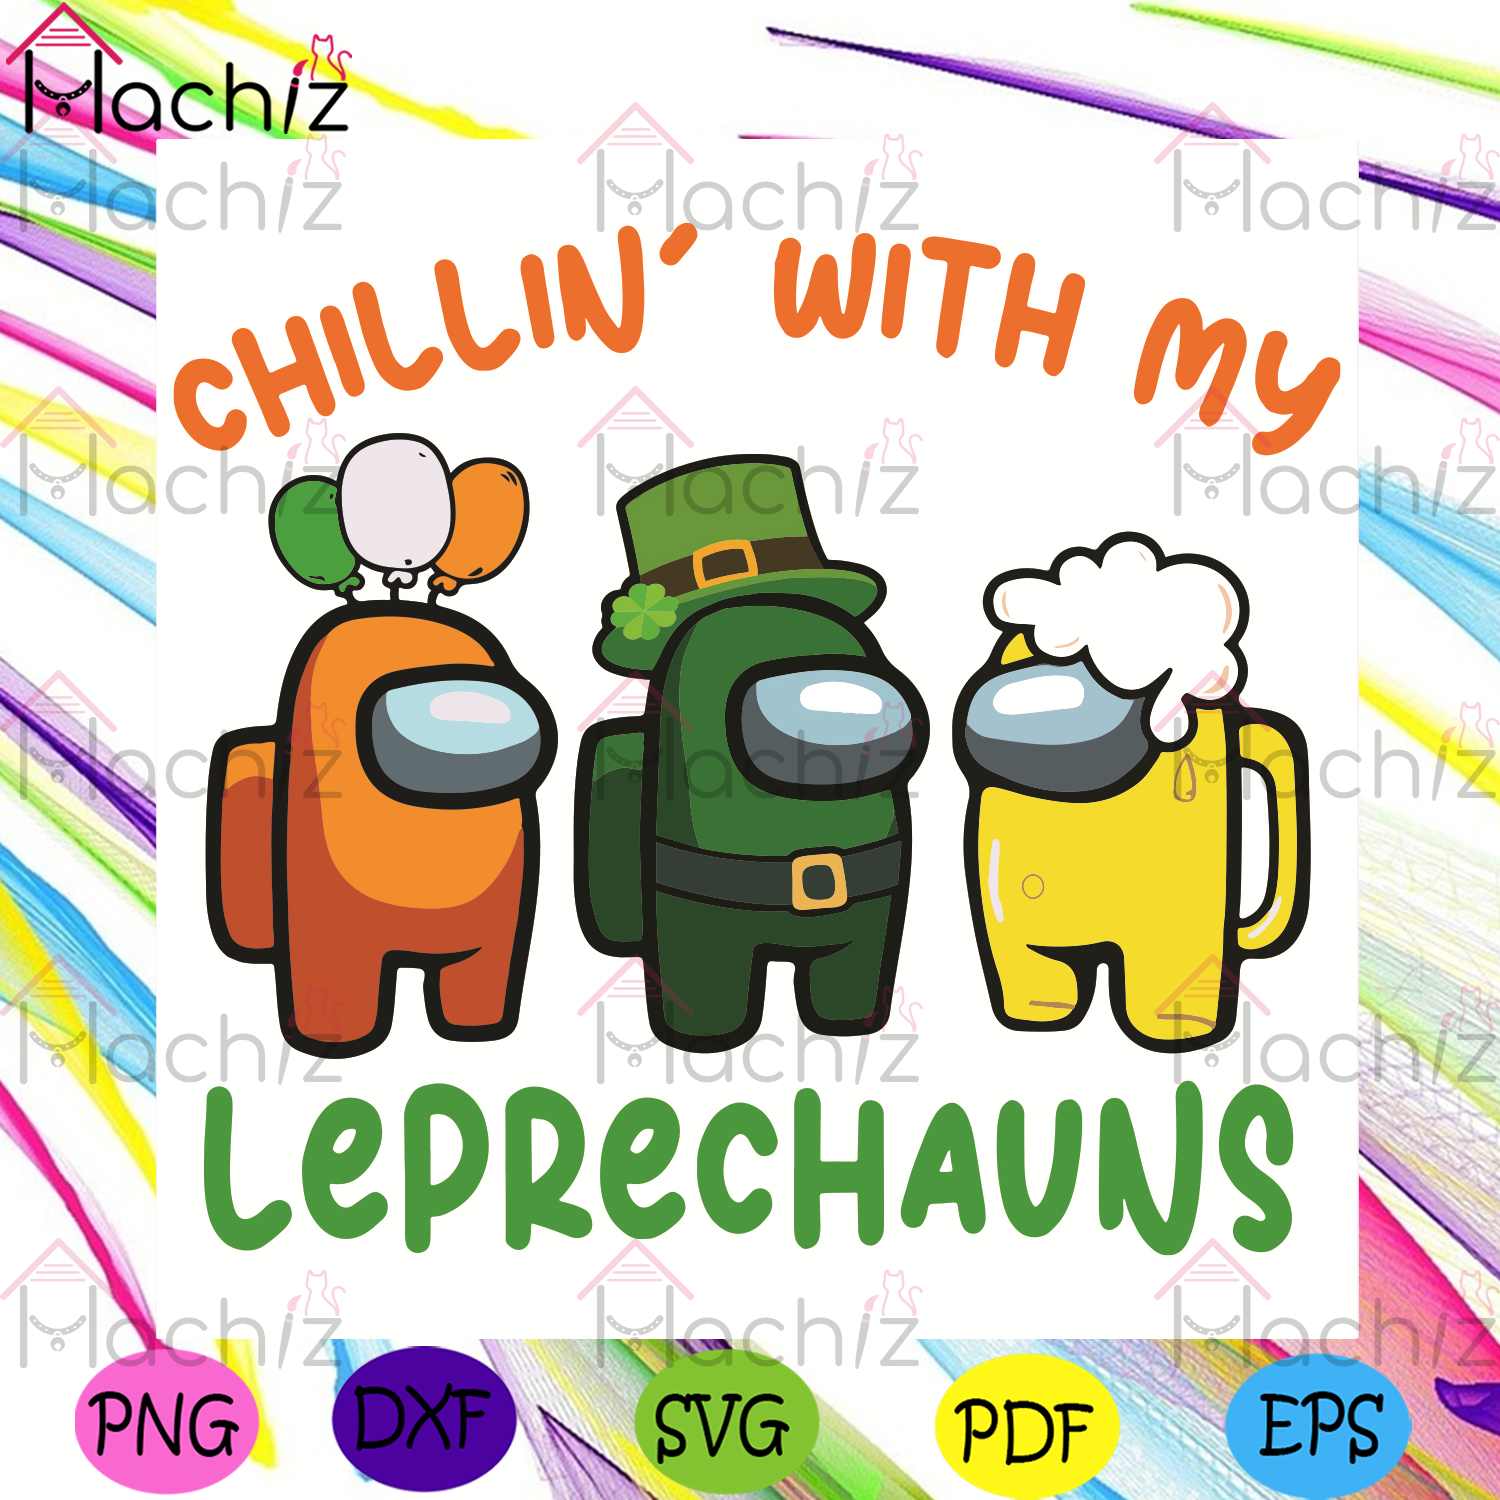 Chillin With My Leprechauns Svg, Patrick Svg, Among Us Leprechauns Svg, Among Us Patrick Svg, Leprechauns Svg, Impostors Svg, Crewmate Svg, Among Us Svg, Shamrock Svg, Patrick Beer Svg, Patrick Day Svg, Patrick Gifts Svg